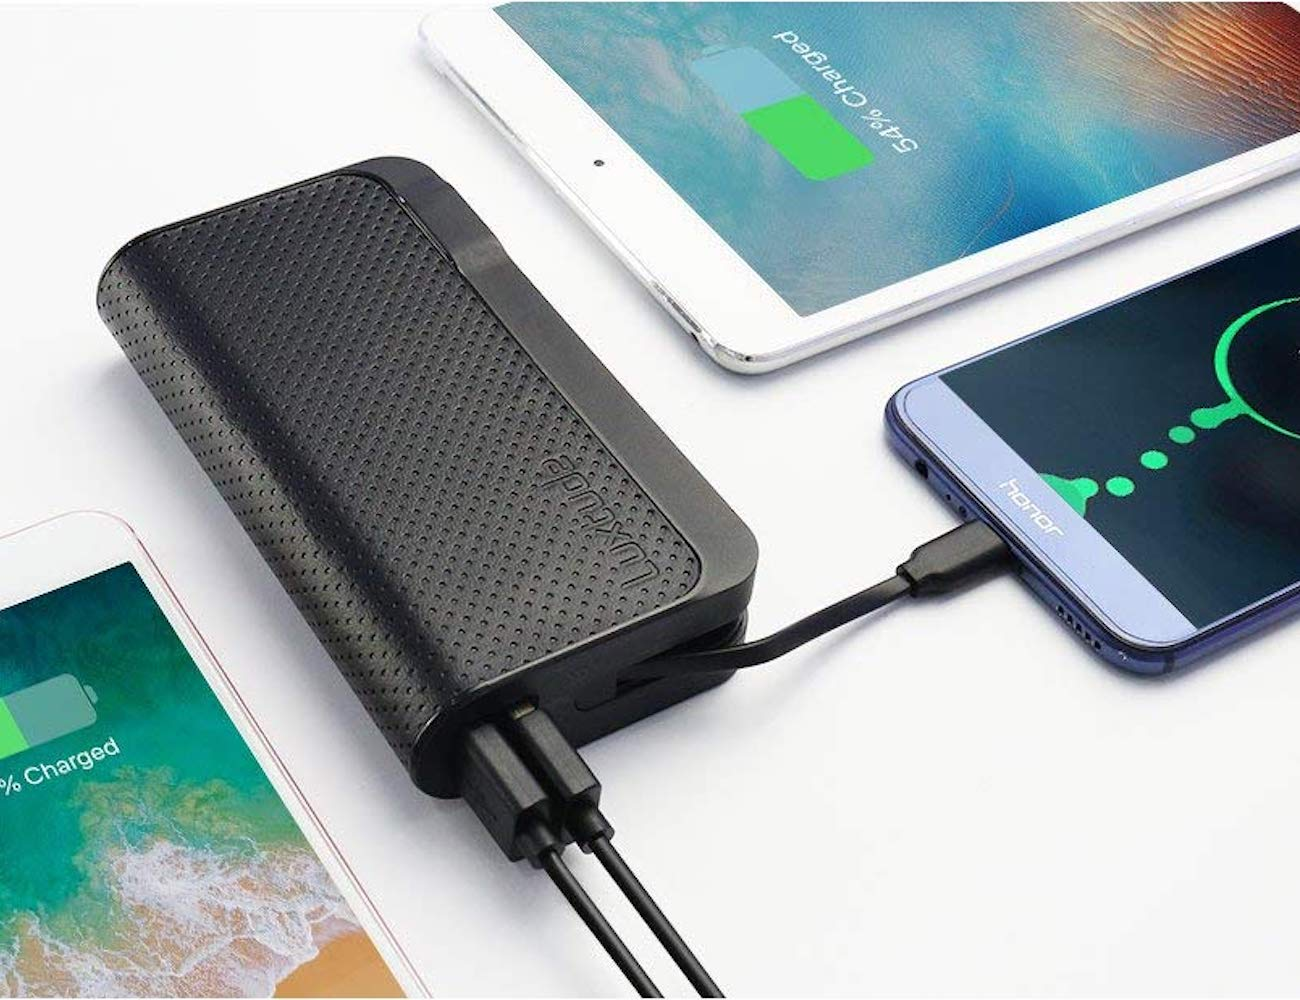 Luxtude GlobalTraveler 3-in-1 Portable Charger